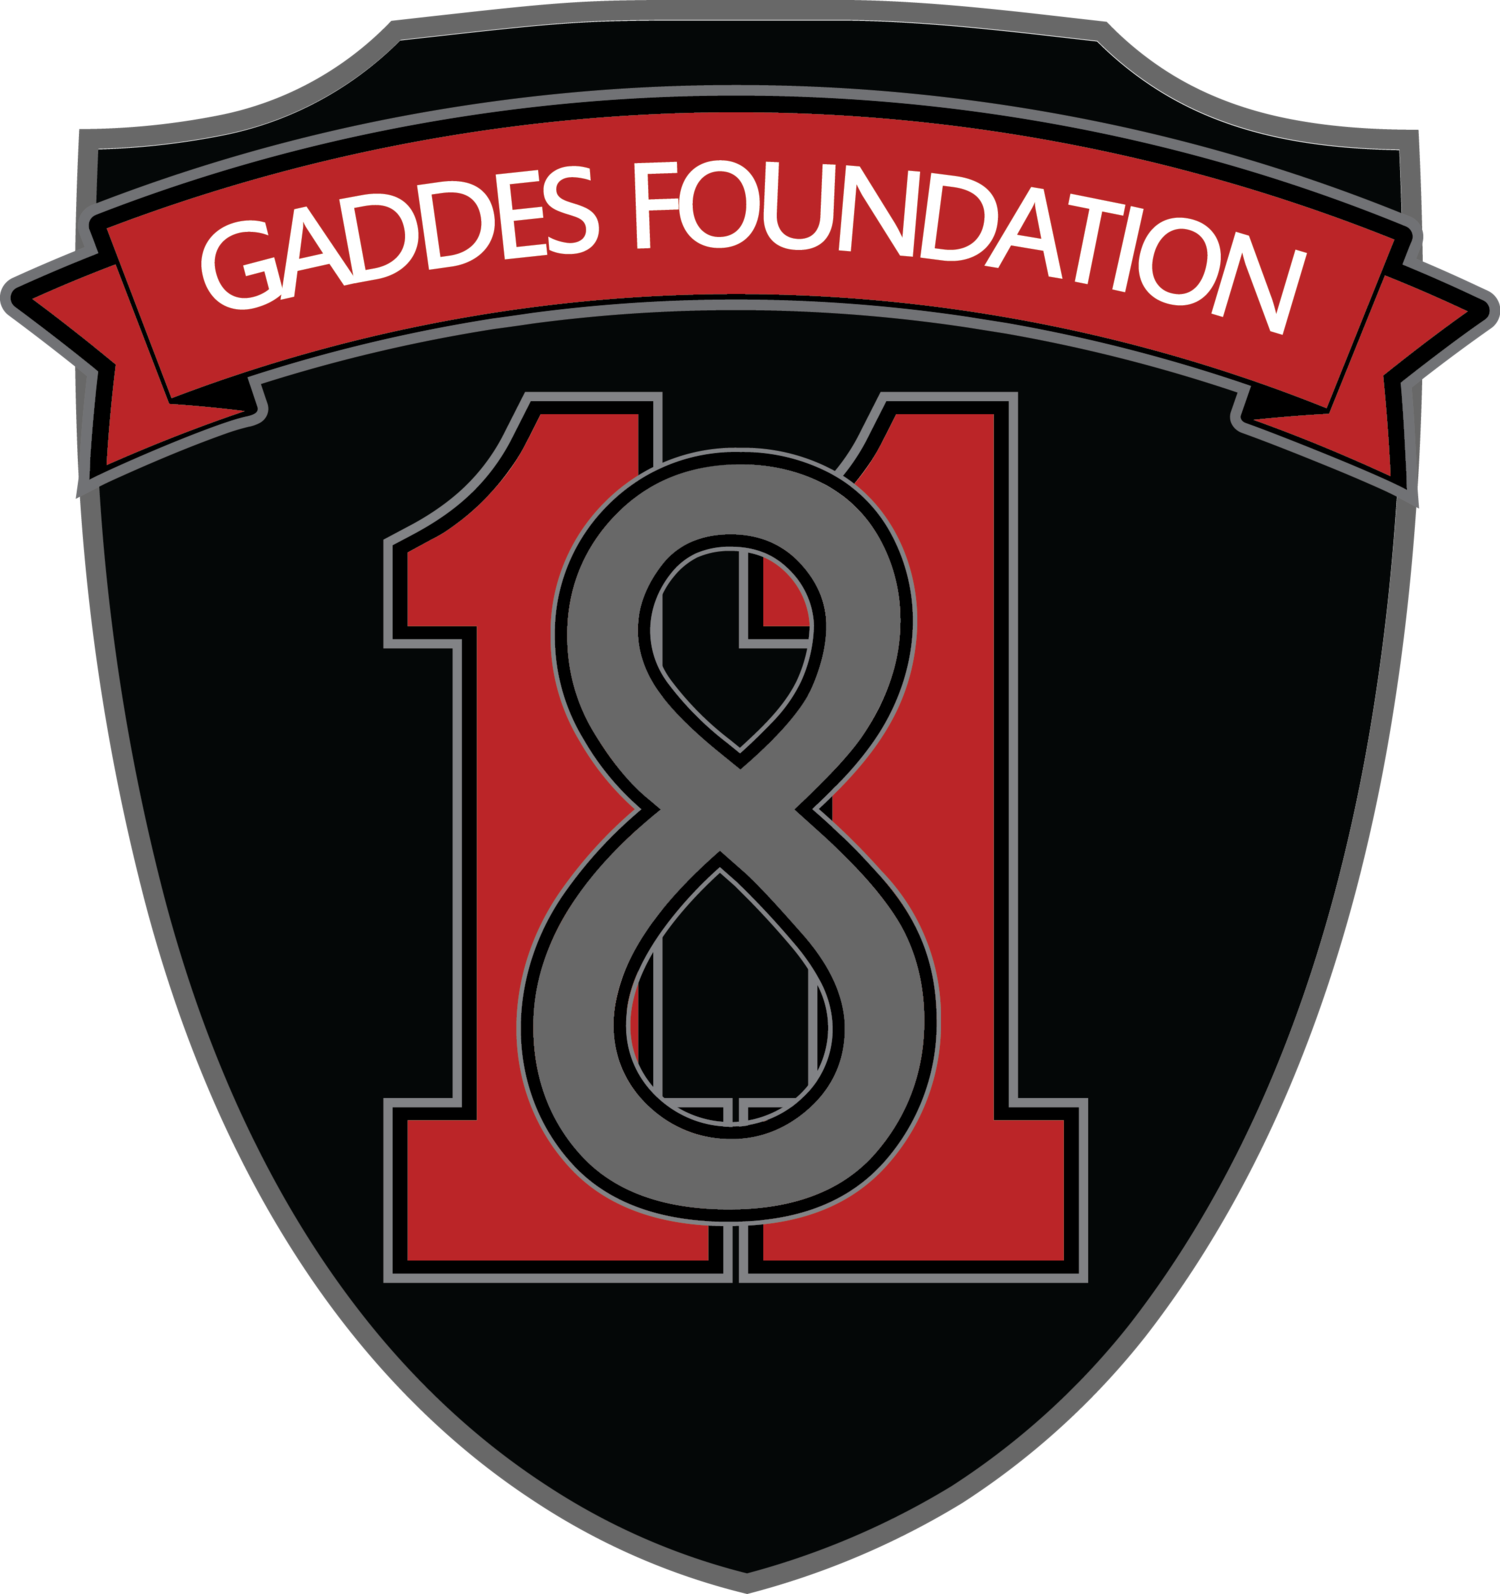 Gaddes Foundation